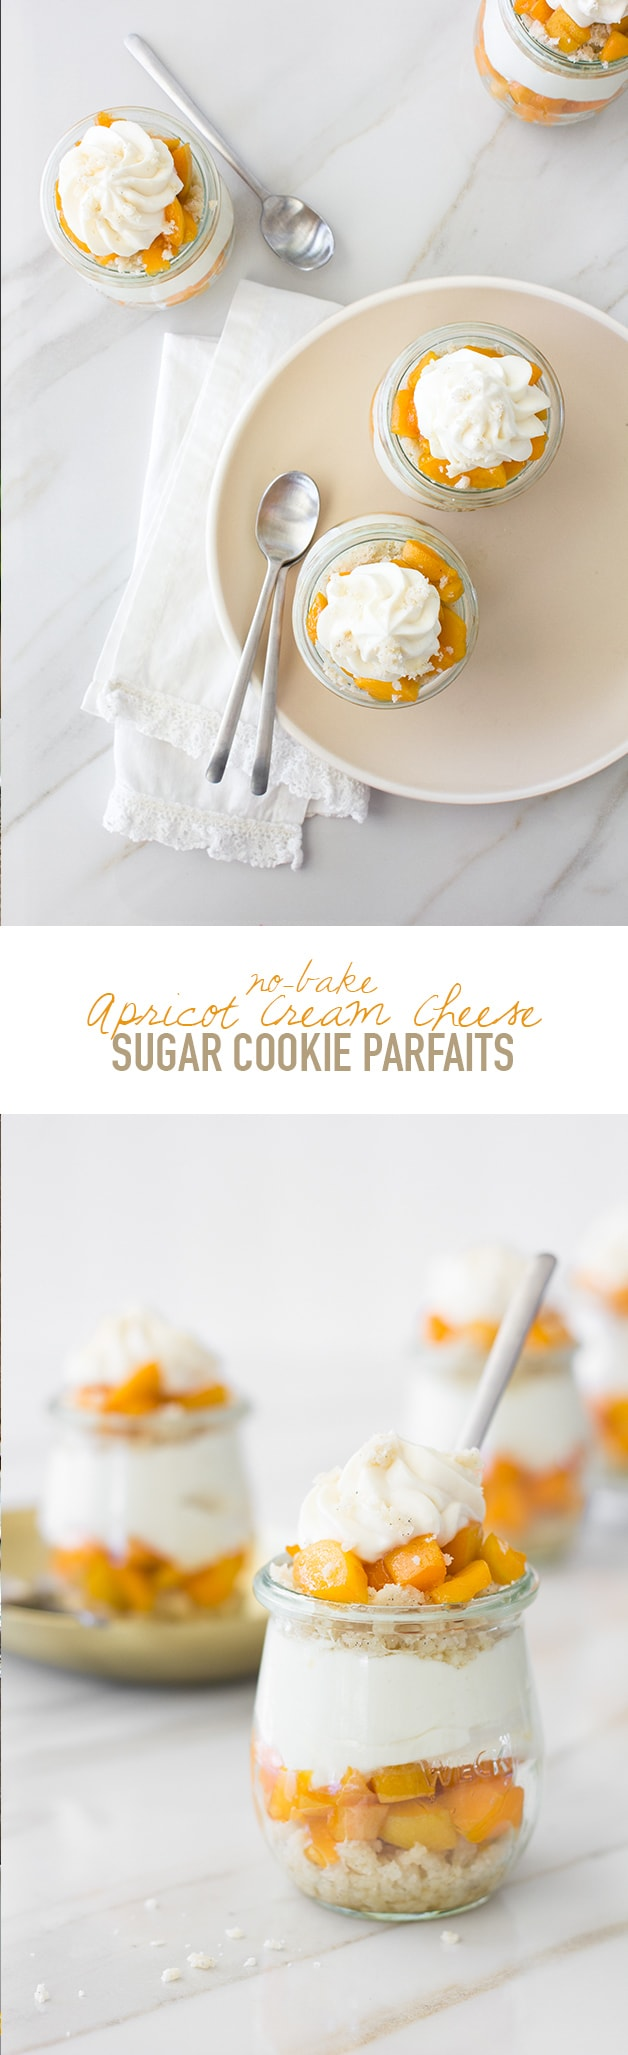 No-Bake Apricot Cream Cheese Sugar Cookie Parfaits - A refreshingly light, fruity dessert that combines no-bake sugar cookie dough crumbles with juicy, tangy-sweet apricots and silky cream cheese whipped cream. It's the perfect sweet treat for summer!| www.brighteyedbaker.com